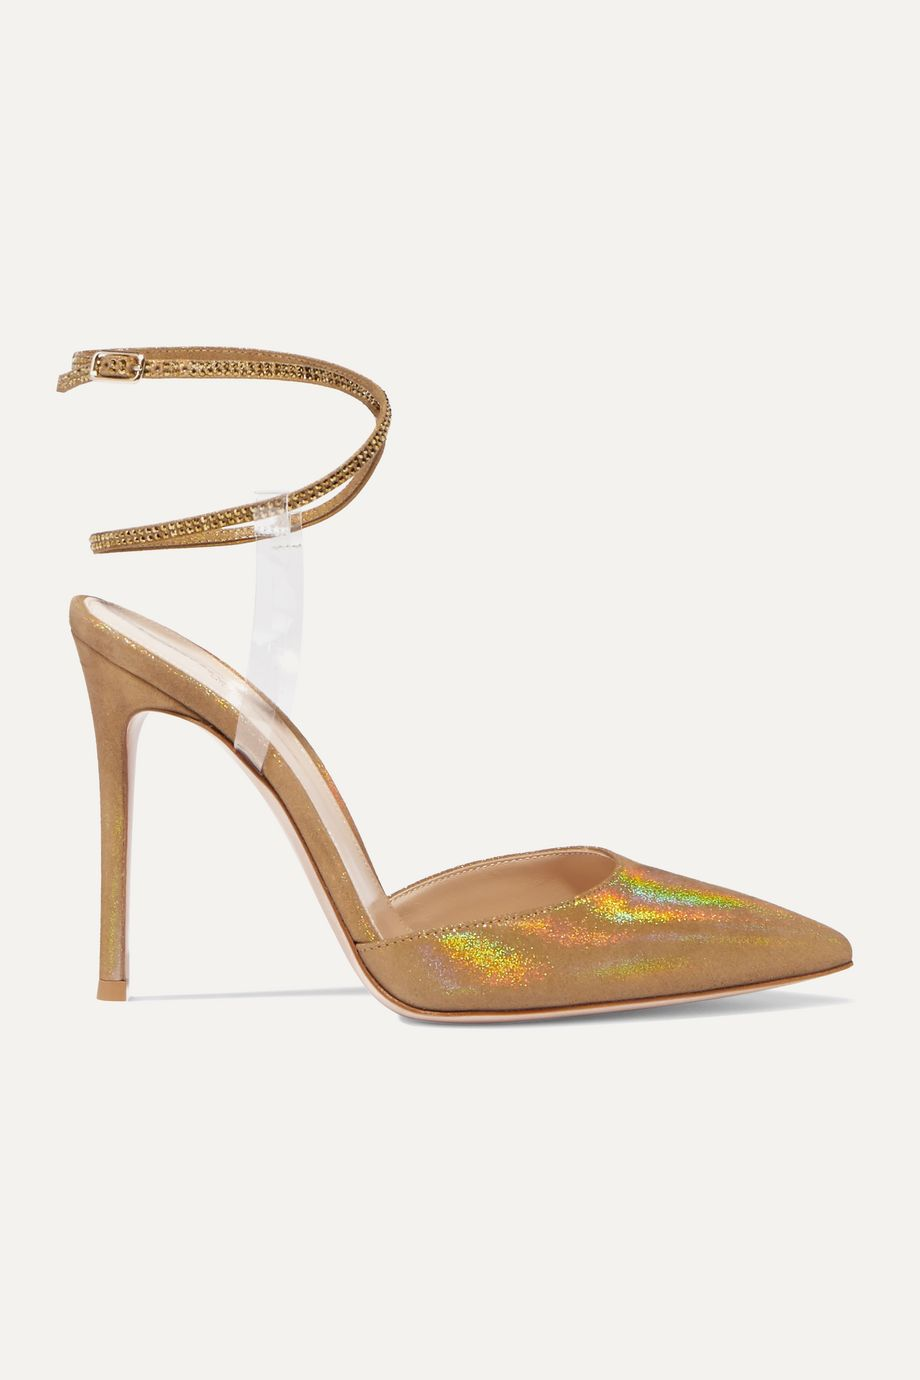 Gianvito Rossi 105 PVC-trimmed glittered faille and crystal-embellished suede pumps